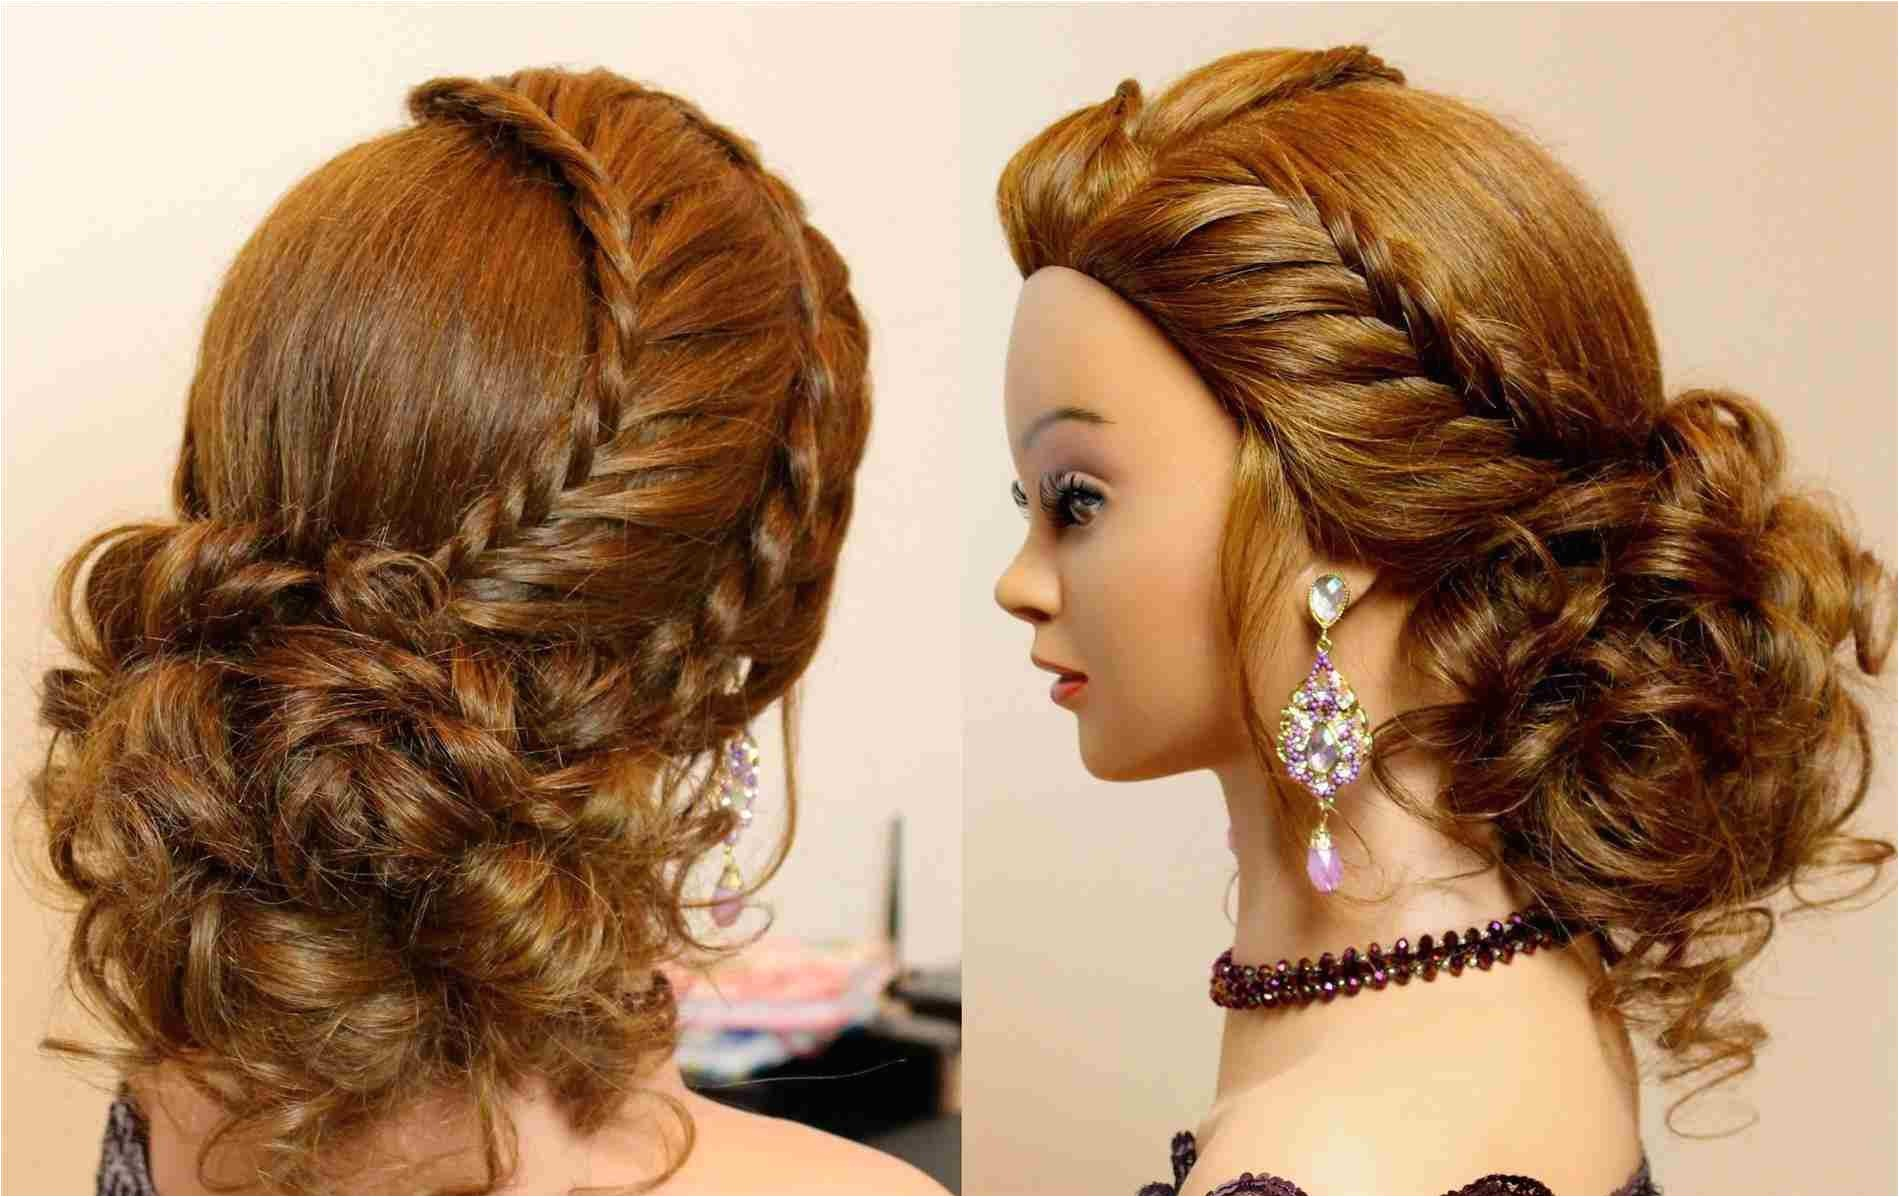 style prom hairstyles for long hair 2016 tutorial cute updo with braids youtuberhyoutube updos ideas updos